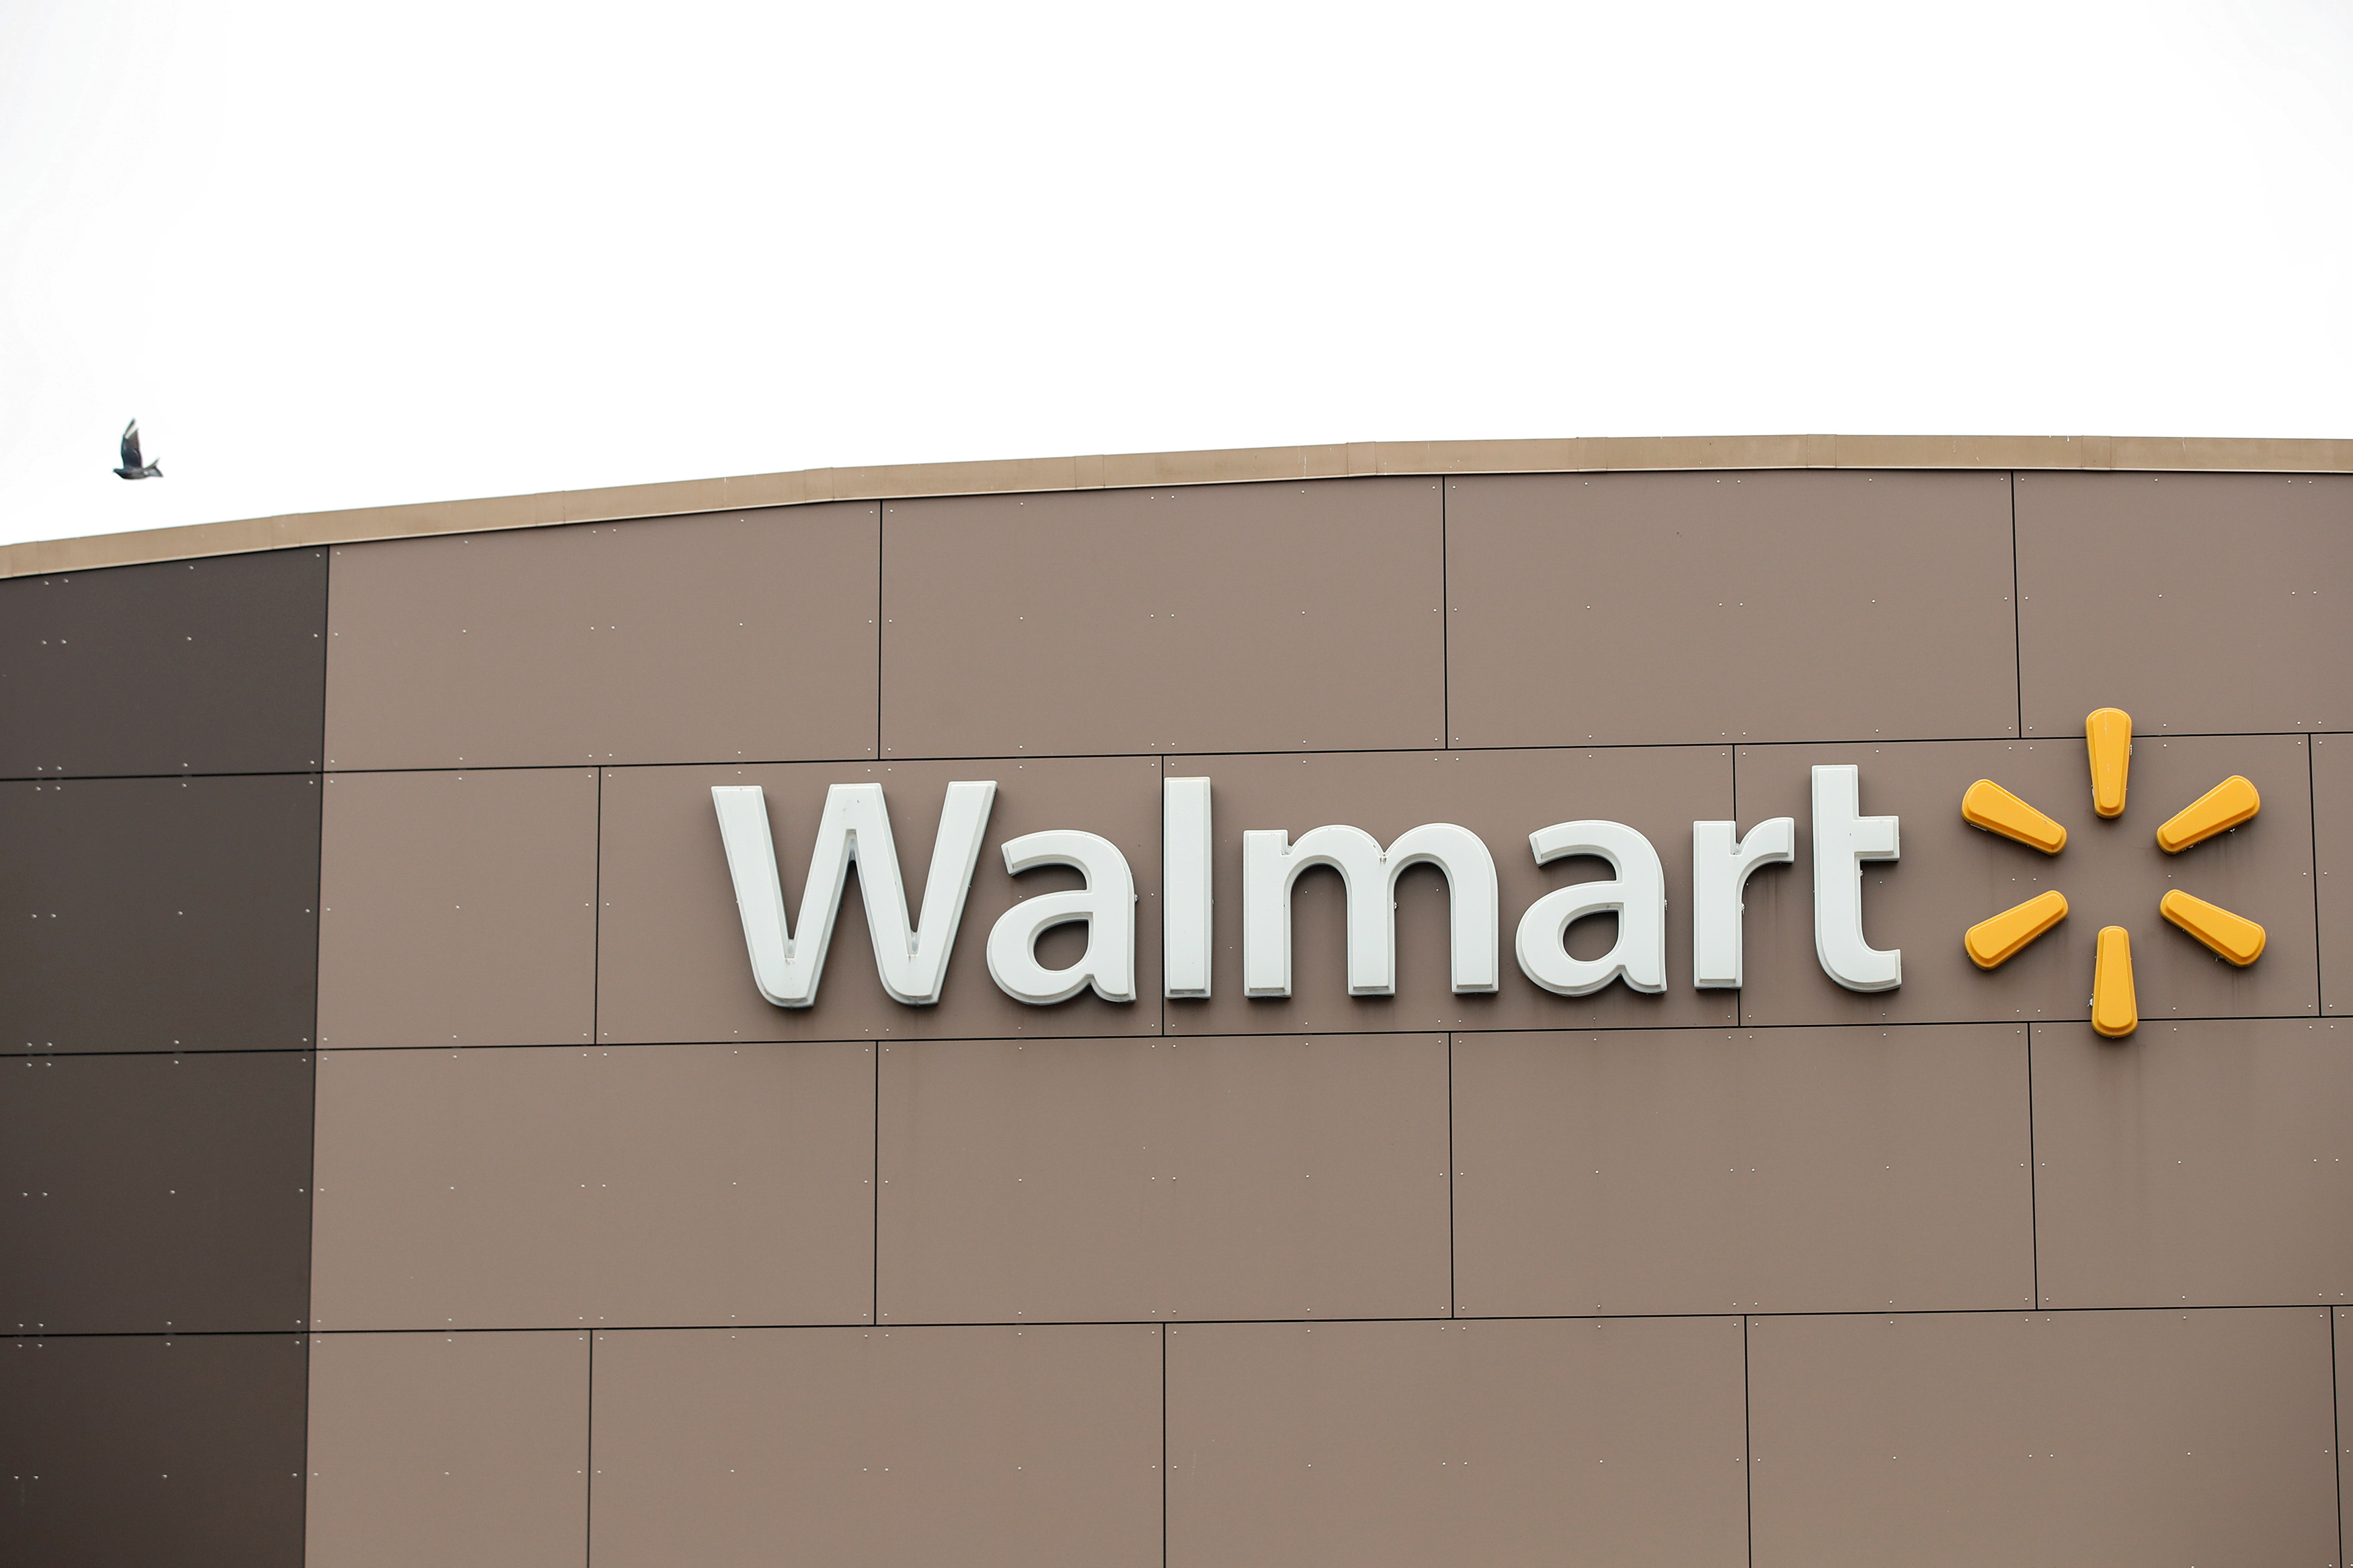 Walmart's logo is seen outside one of the stores ahead of the Thanksgiving holiday in Chicago, Illinois, U.S. November 27, 2019. REUTERS/Kamil Krzaczynski/File Photo